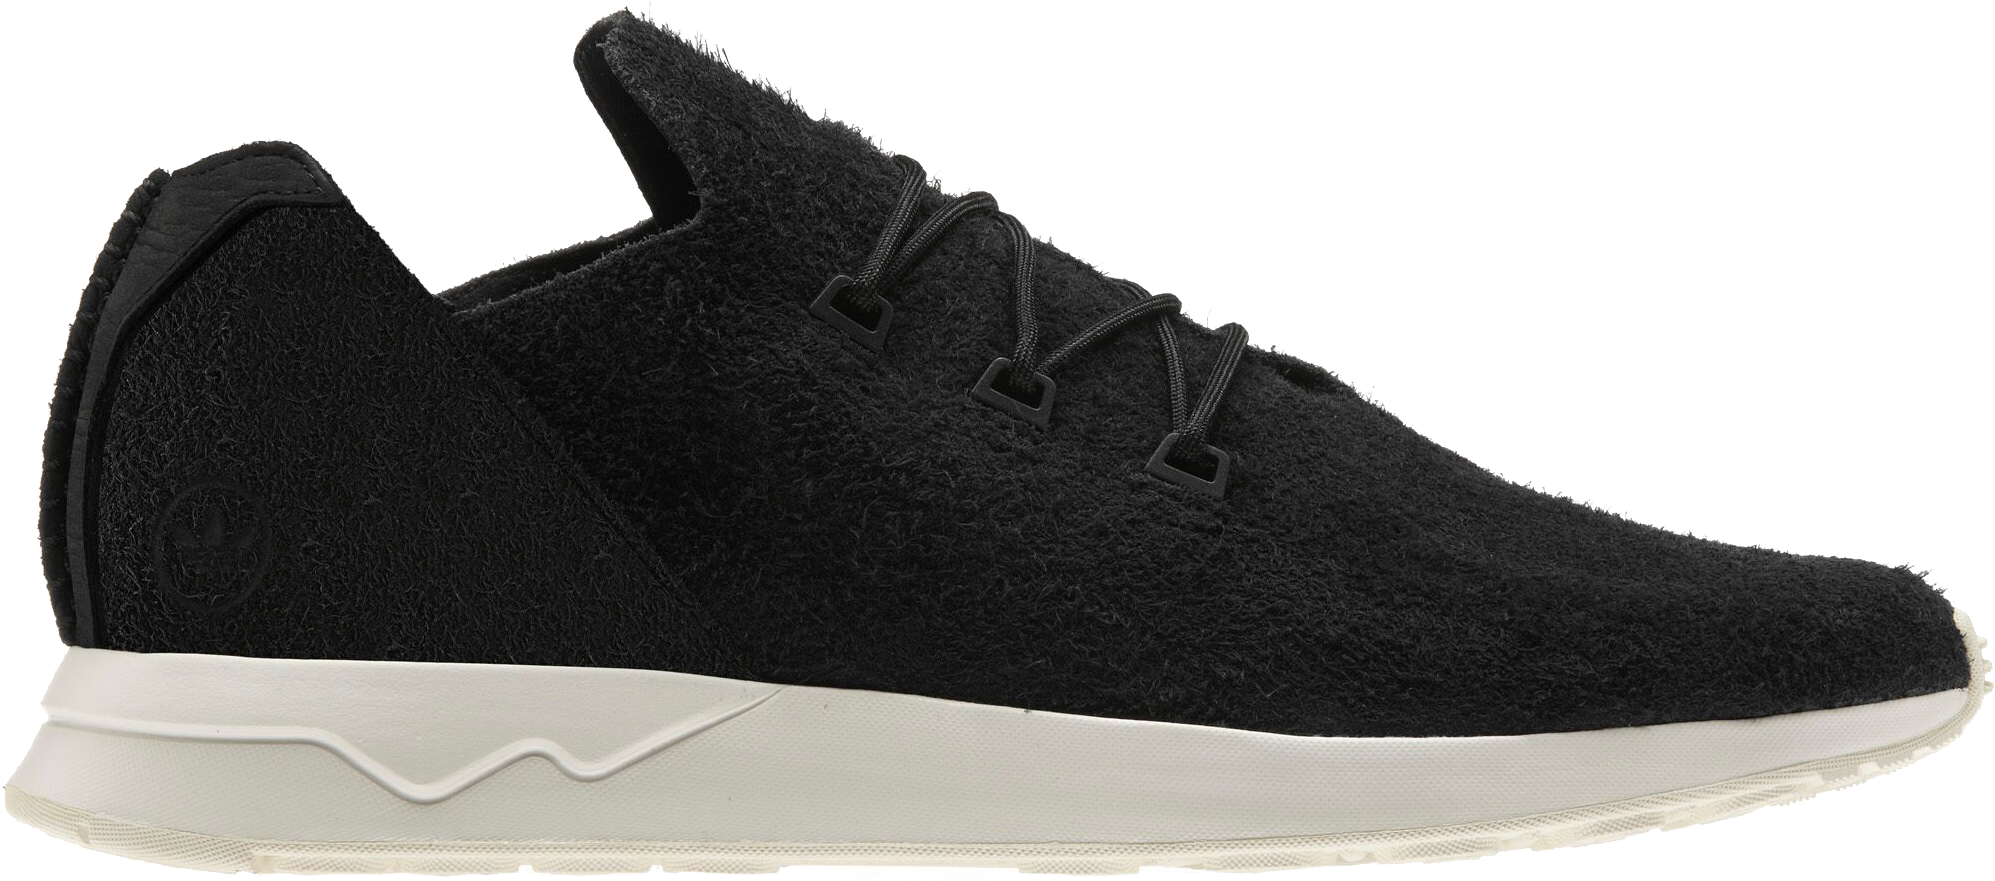 sports shoes d3032 3b084 ... adidas x flux black adidas ZX Flux Adv X Wings and Horns ...